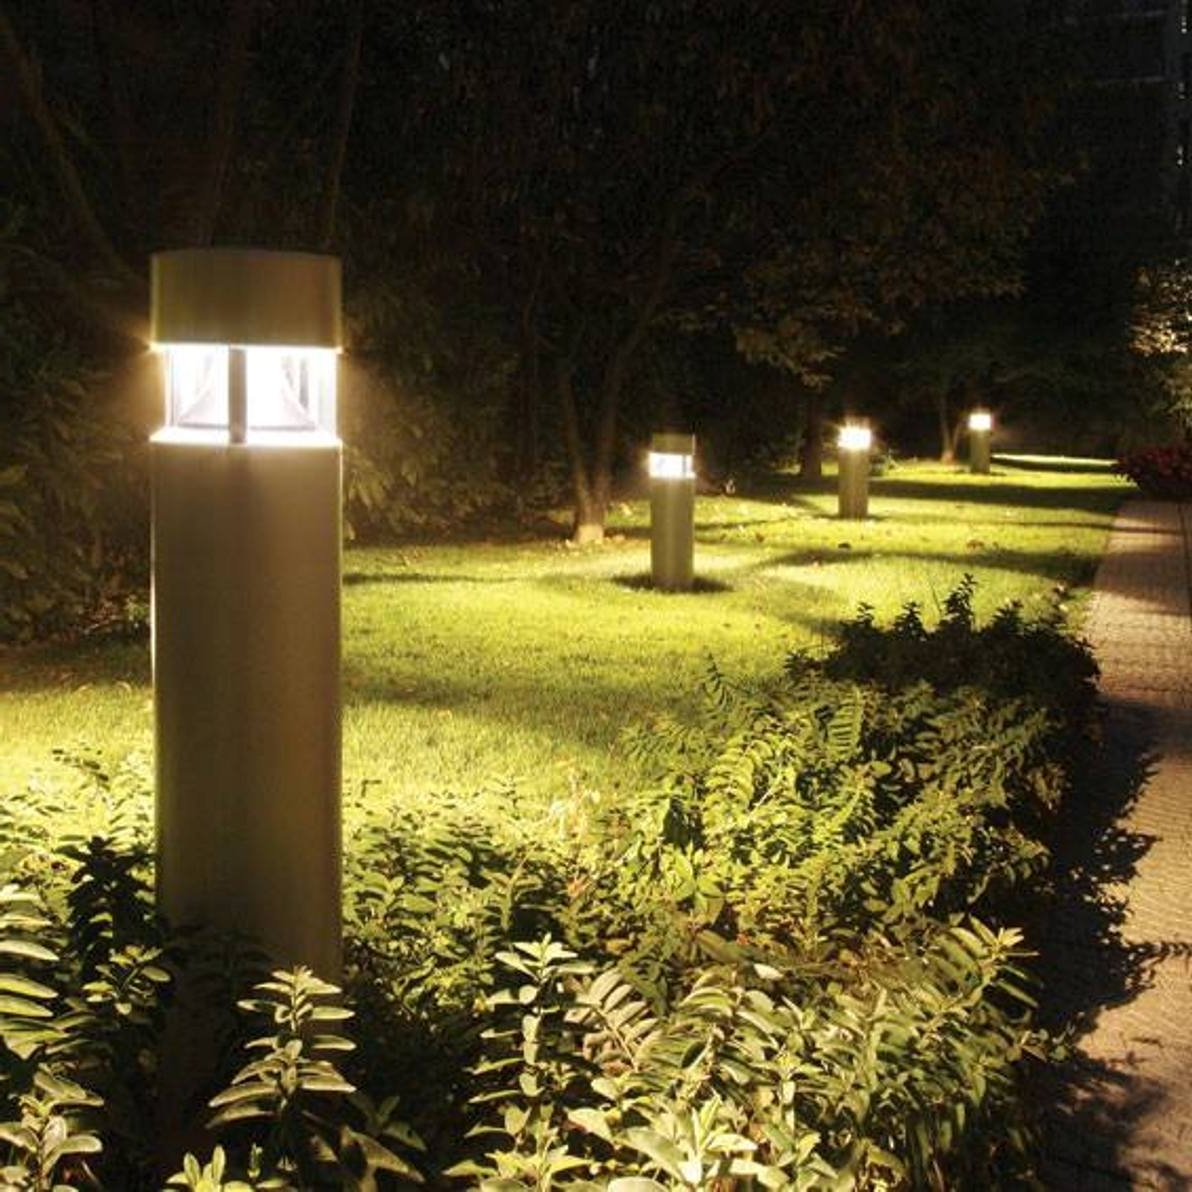 2019 Modern Led Solar Garden Lighting Fixture With Modern Outdoor Post Lights – Free Reference For Home And Interior (View 3 of 20)